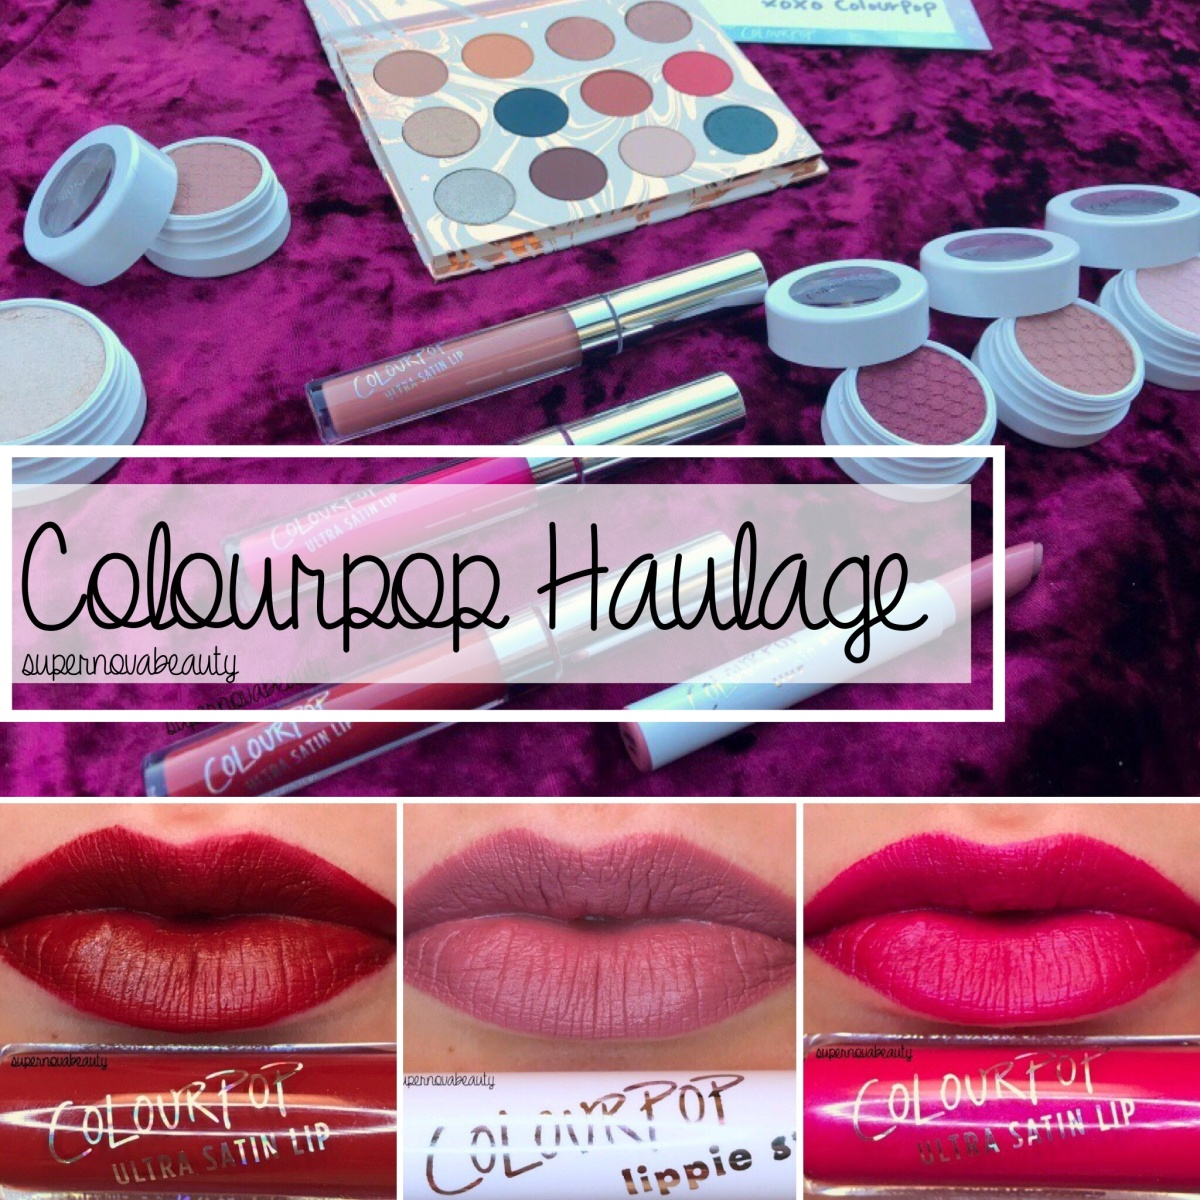 Haulage + Swatches | Colourpop Shadows + Lippies